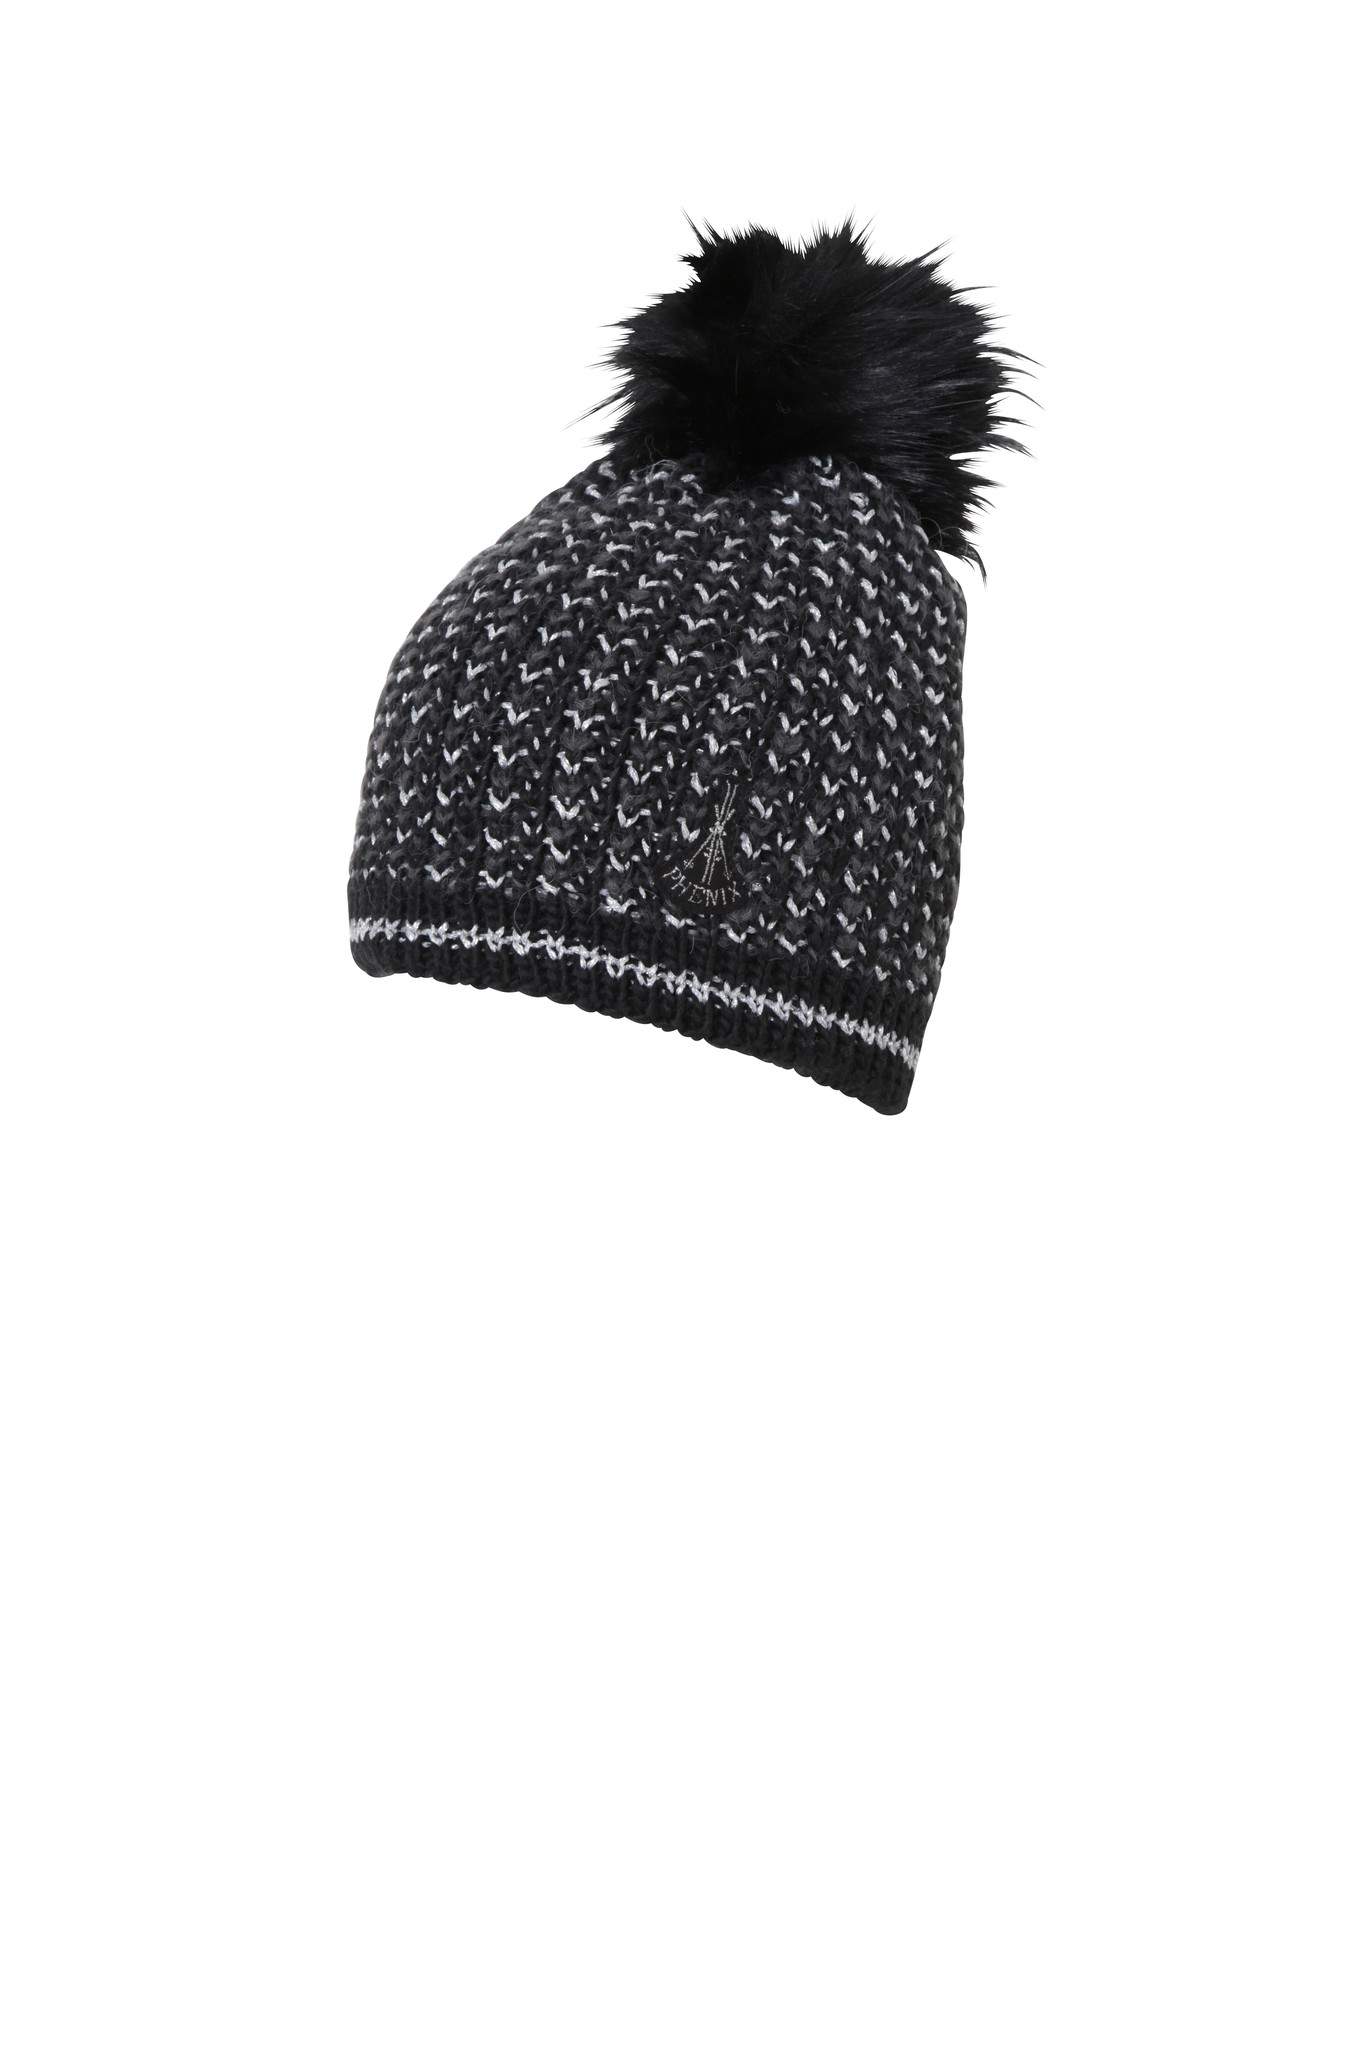 PHENIX Diamond Watch Cap